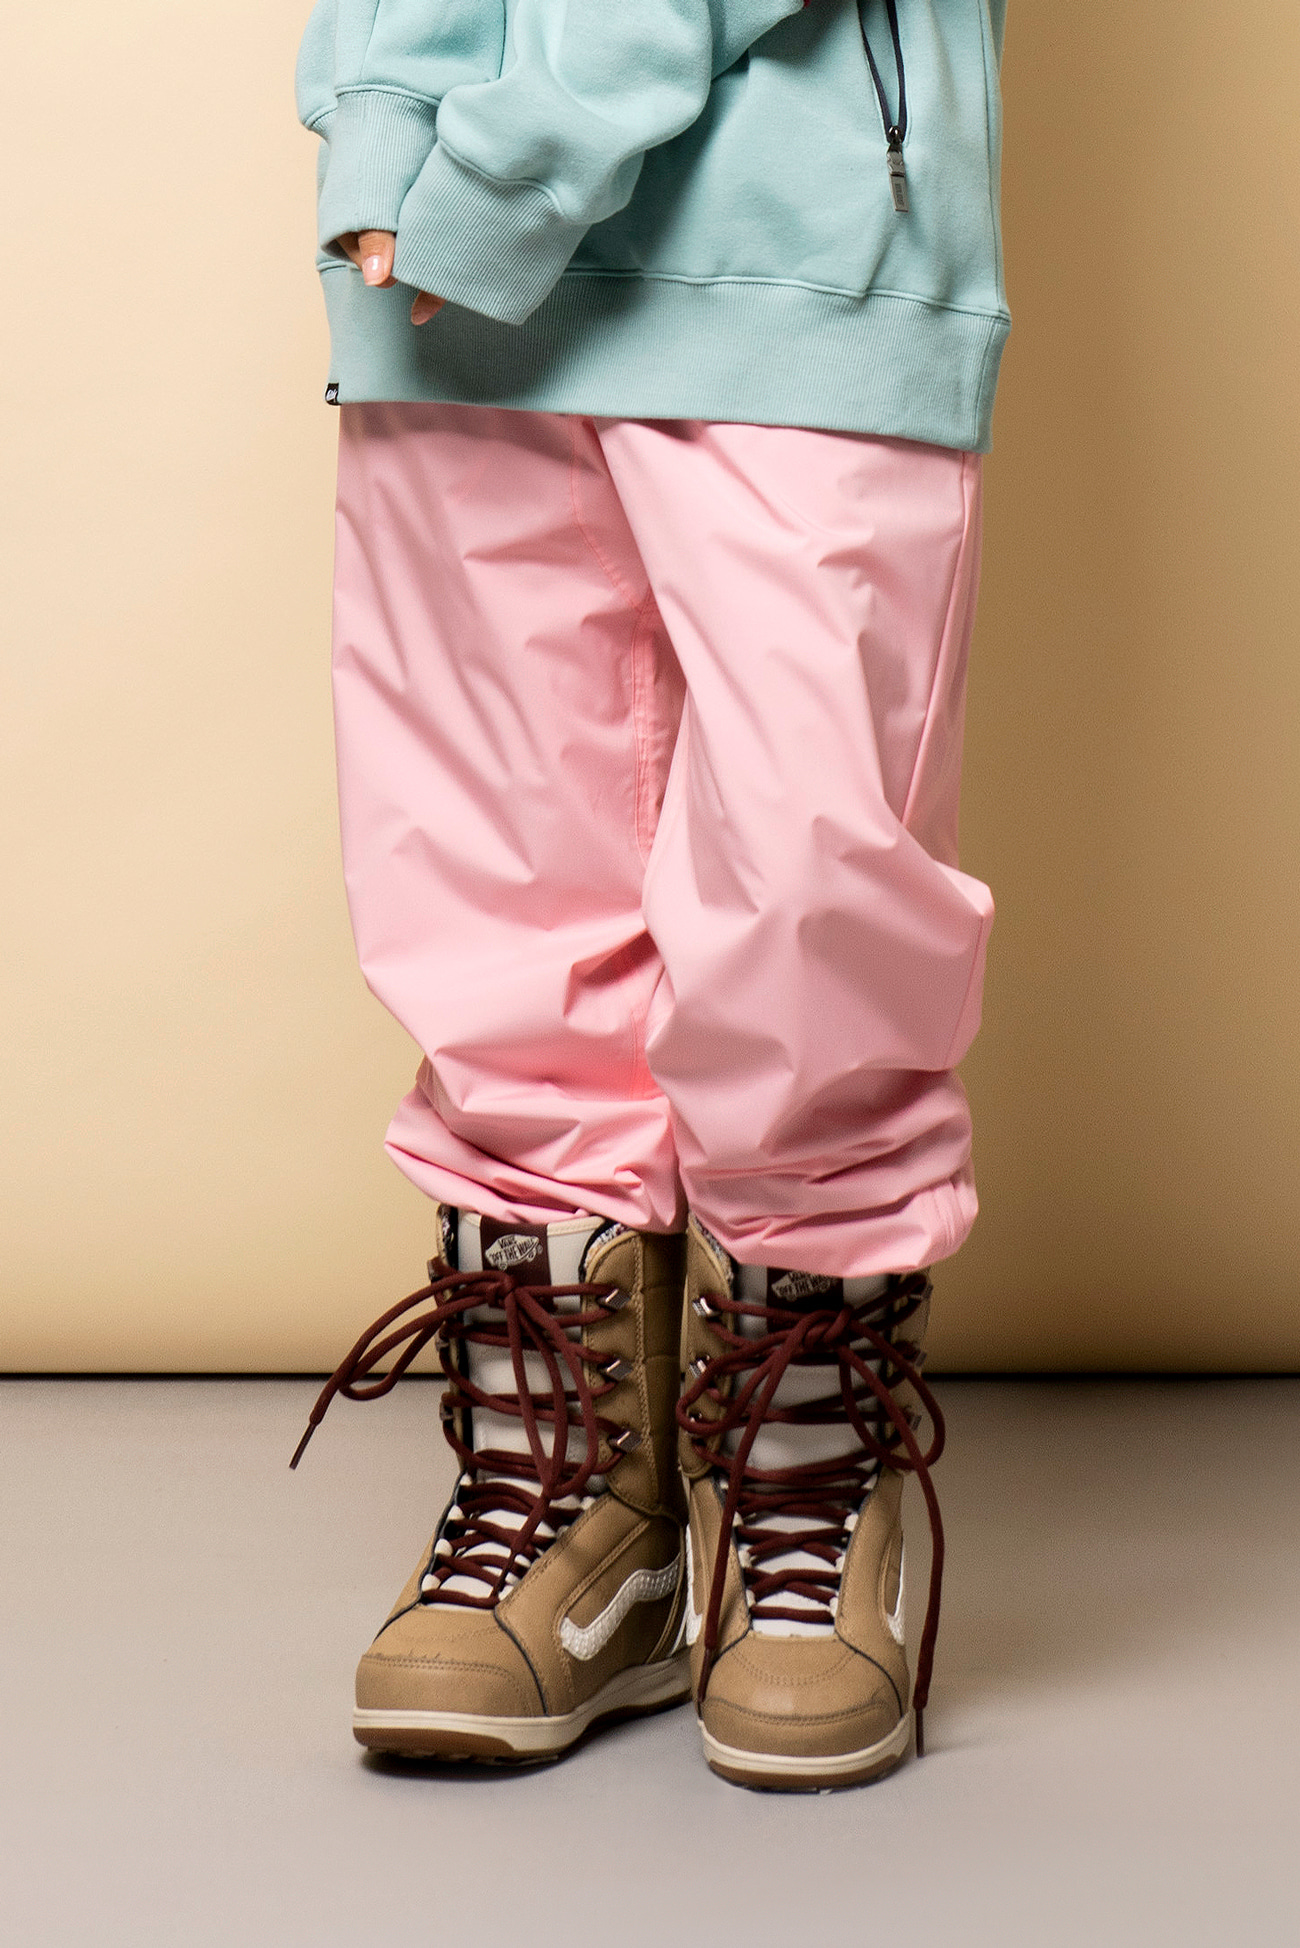 STEEZY jogger pants - pinkHOLIDAY OUTERWEAR